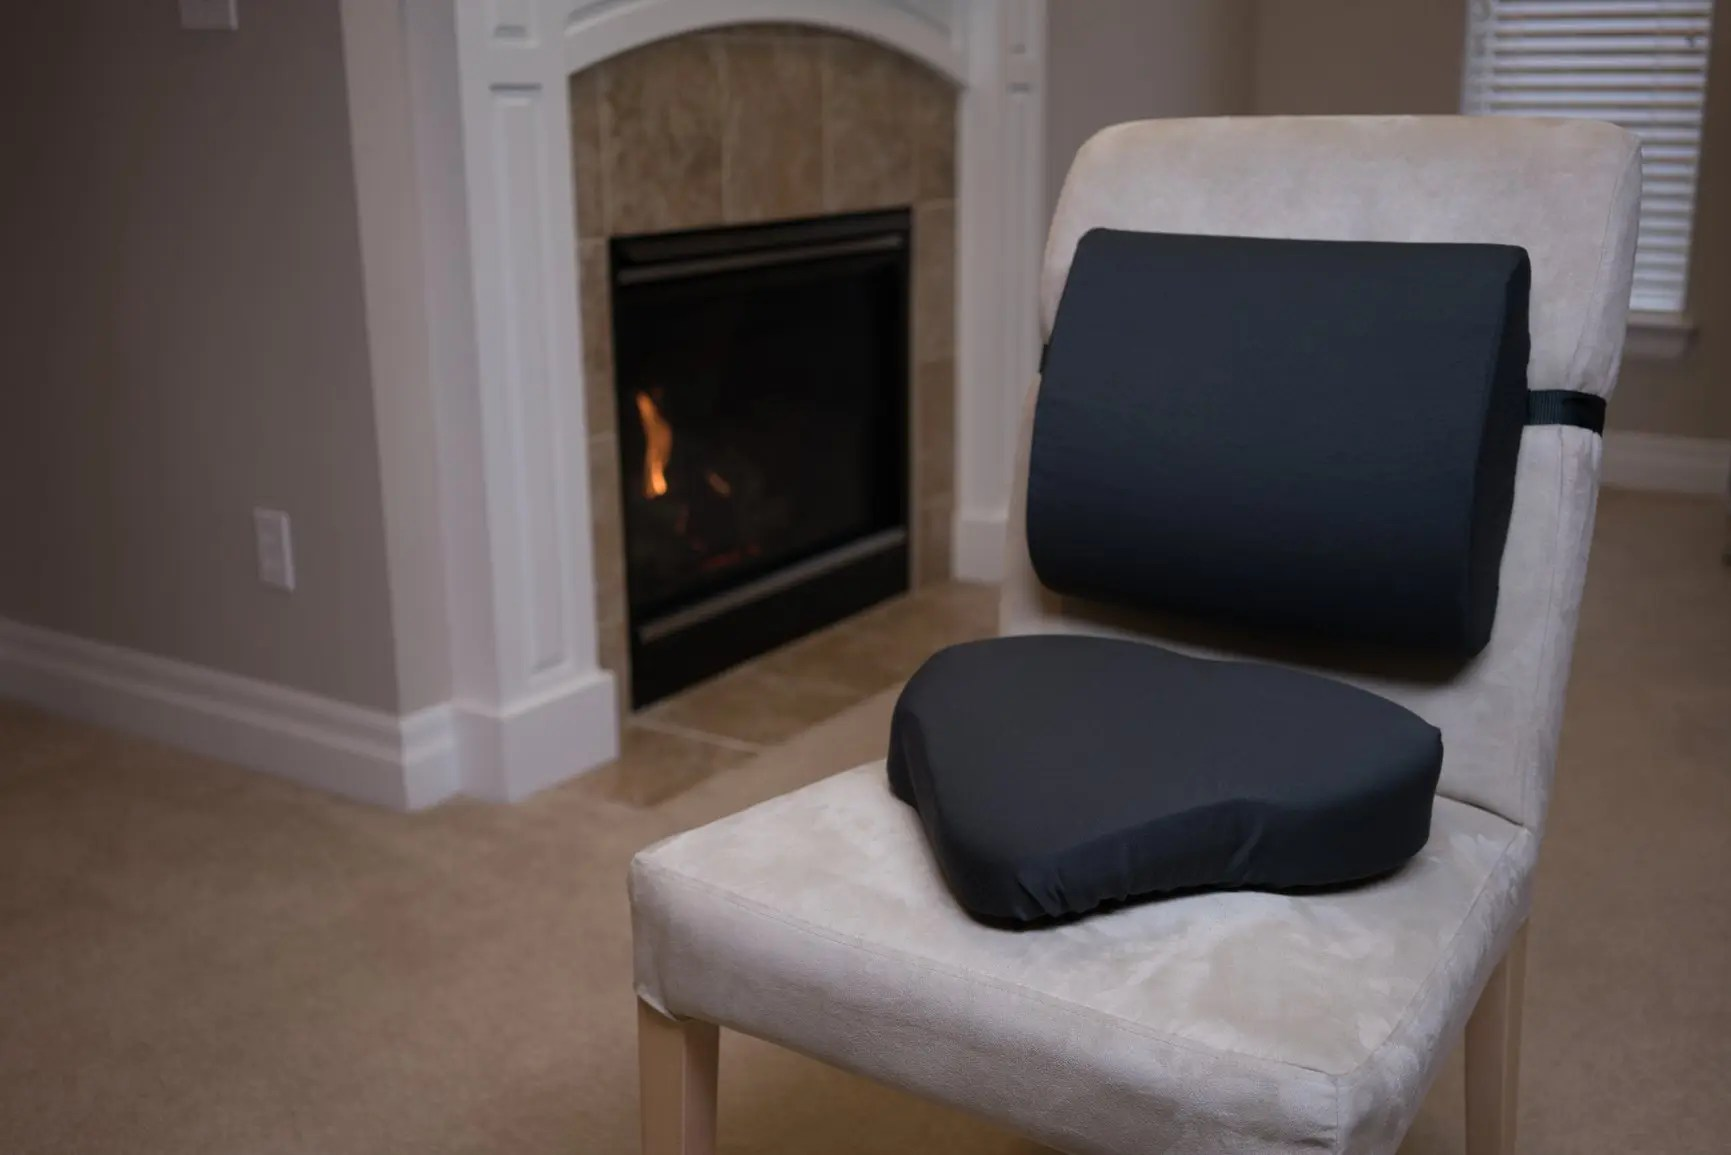 soft chairs spread the hips hanging high chair serene memory foam lumbar support pillow back pain relief